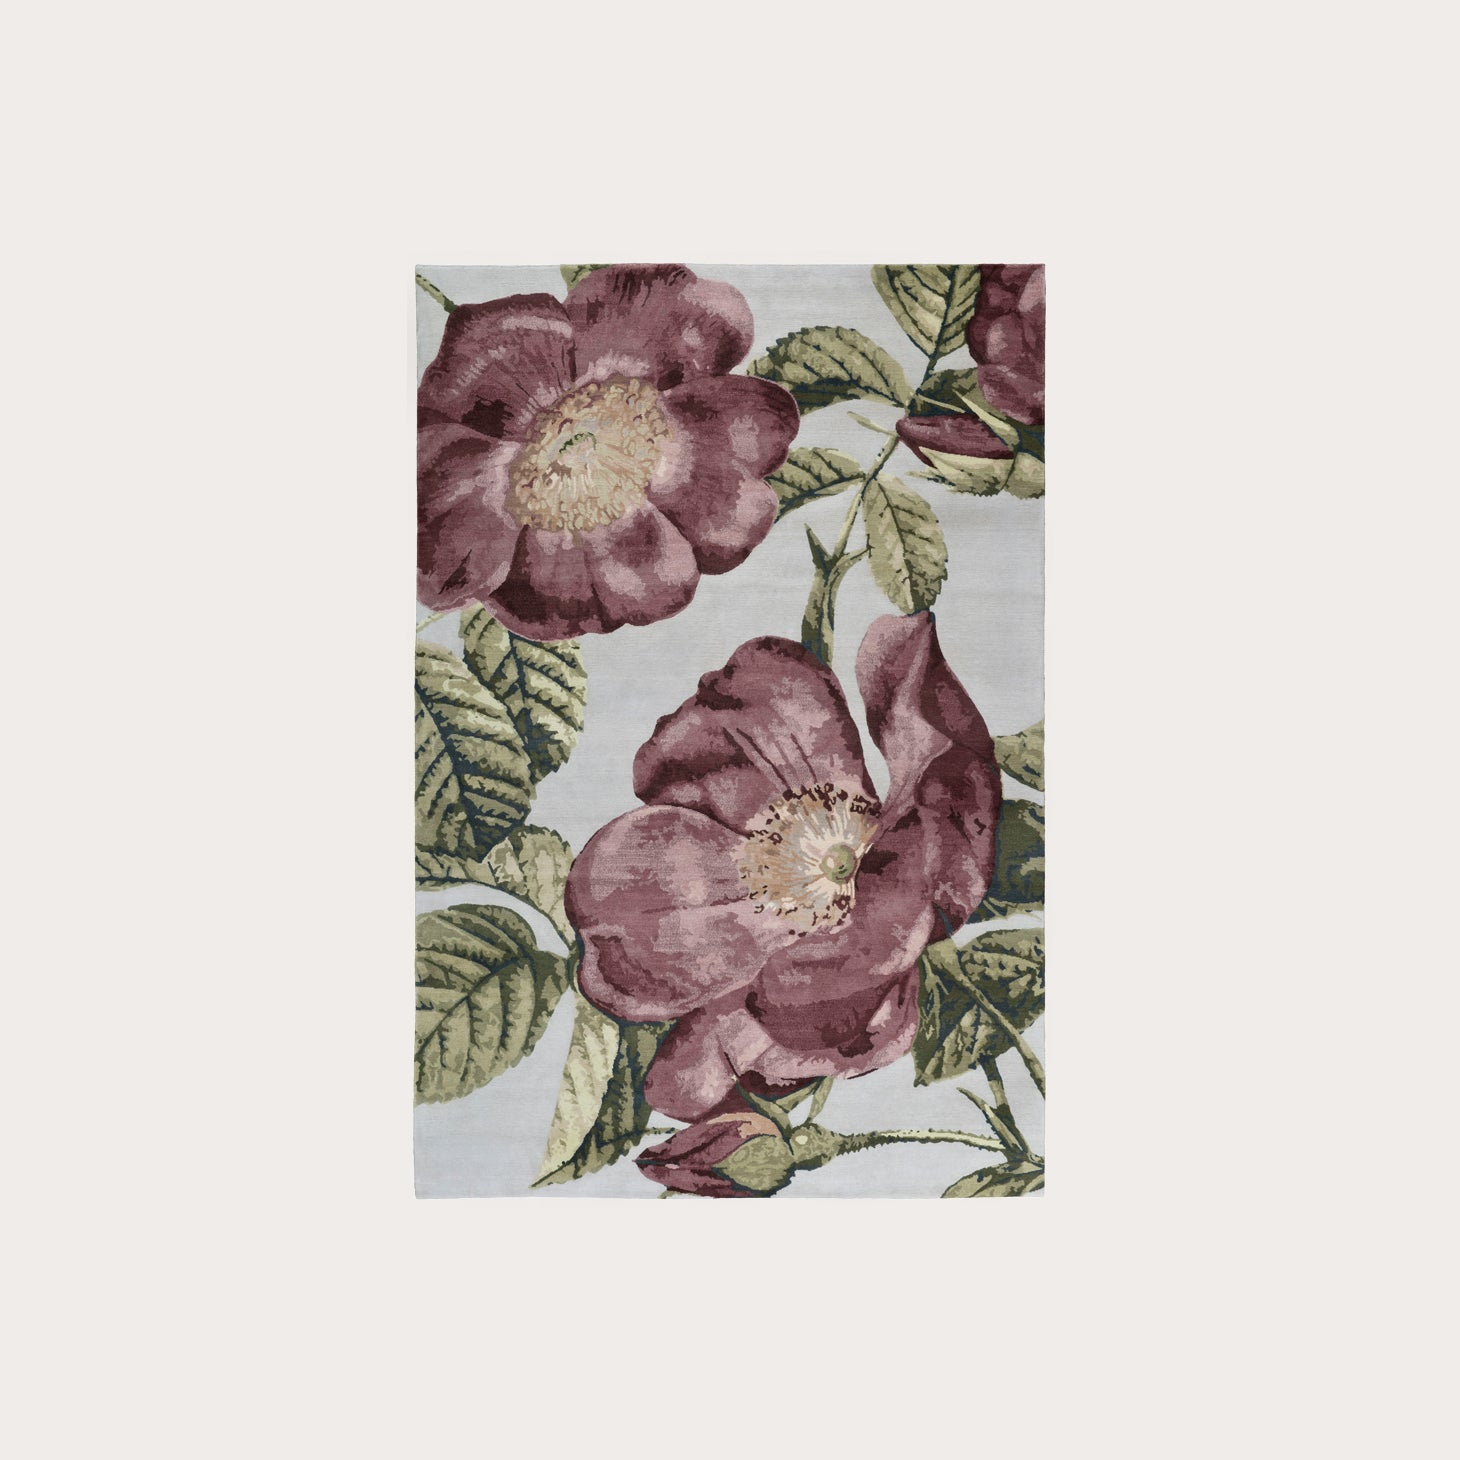 Vivienne's Rose Dust Floor Coverings Vivienne Westwood Designer Furniture Sku: 391-150-10865